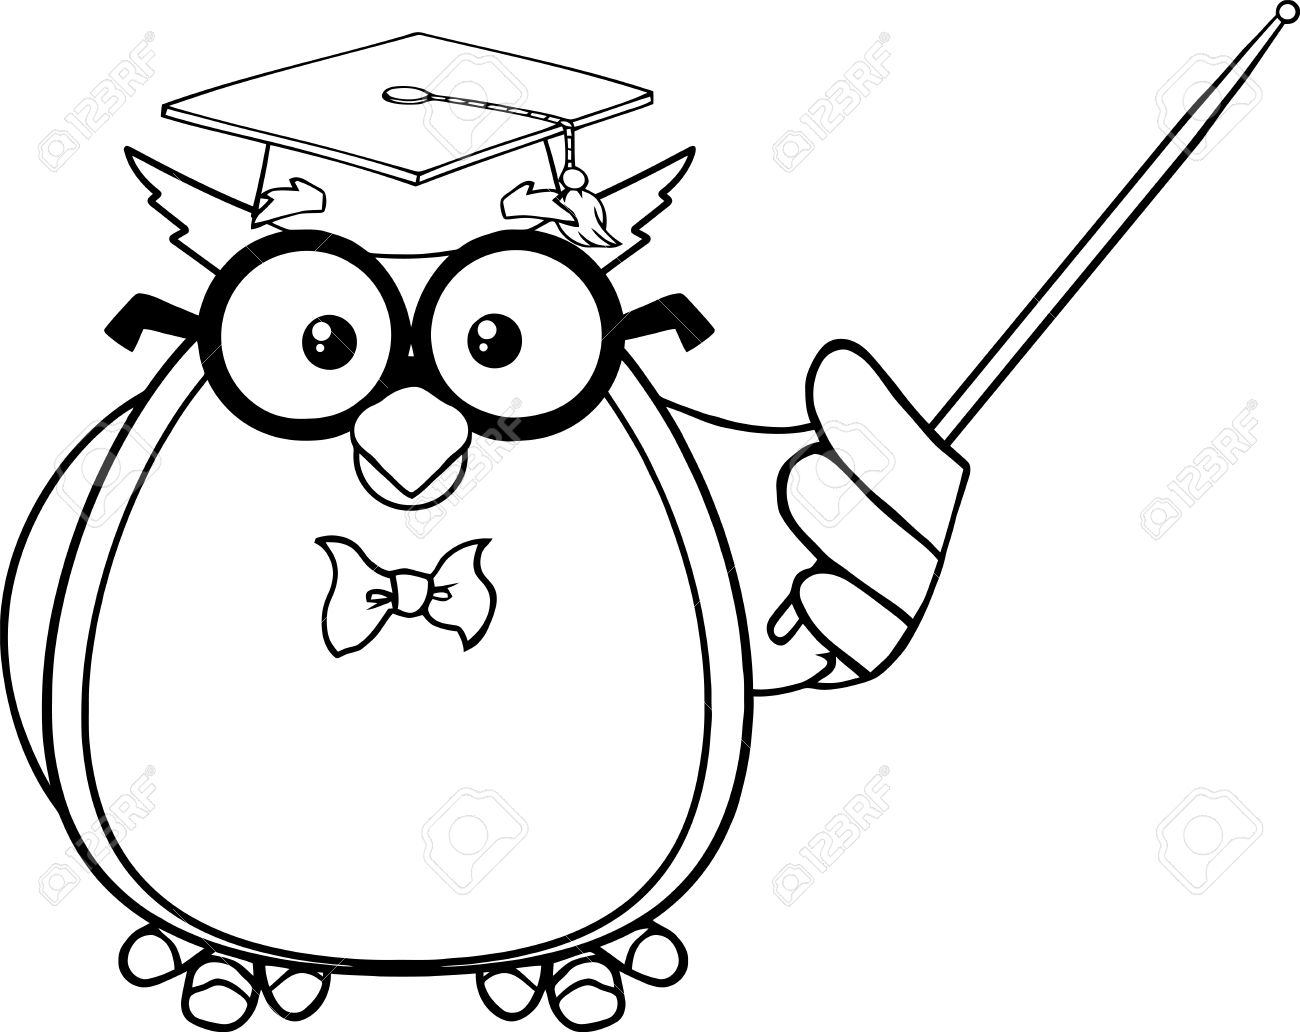 black and white wise owl teacher cartoon mascot character with rh 123rf com snowy owl black and white clipart owl black and white clipart